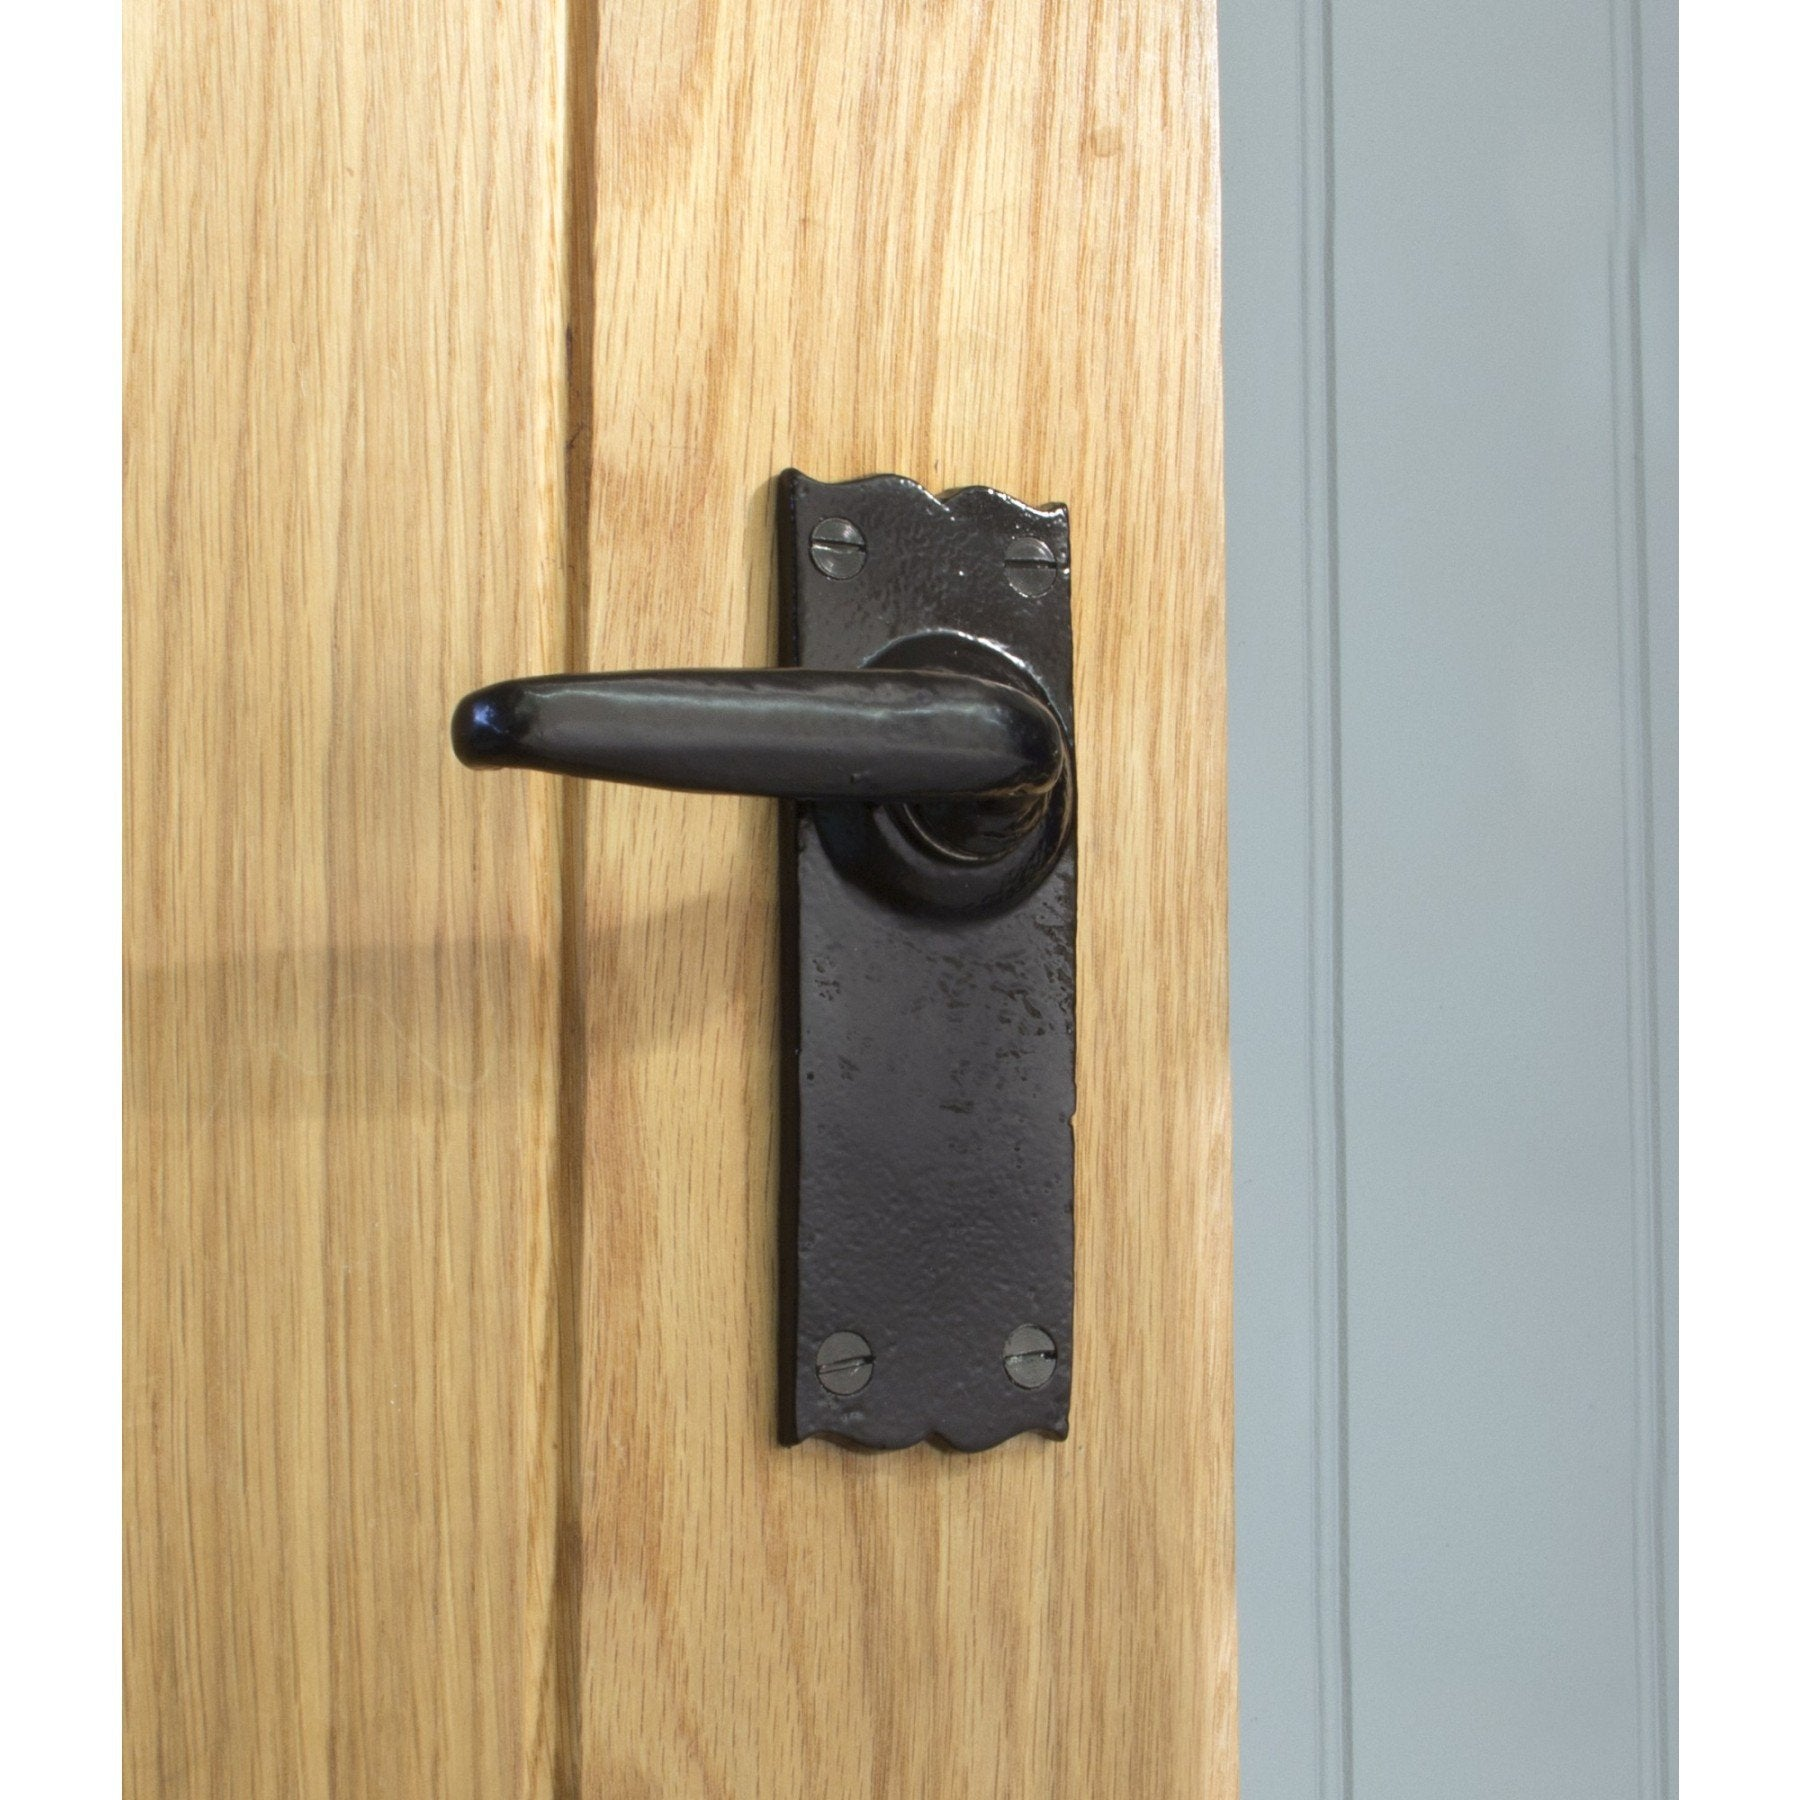 From the Anvil Black Oak Lever Latch Set